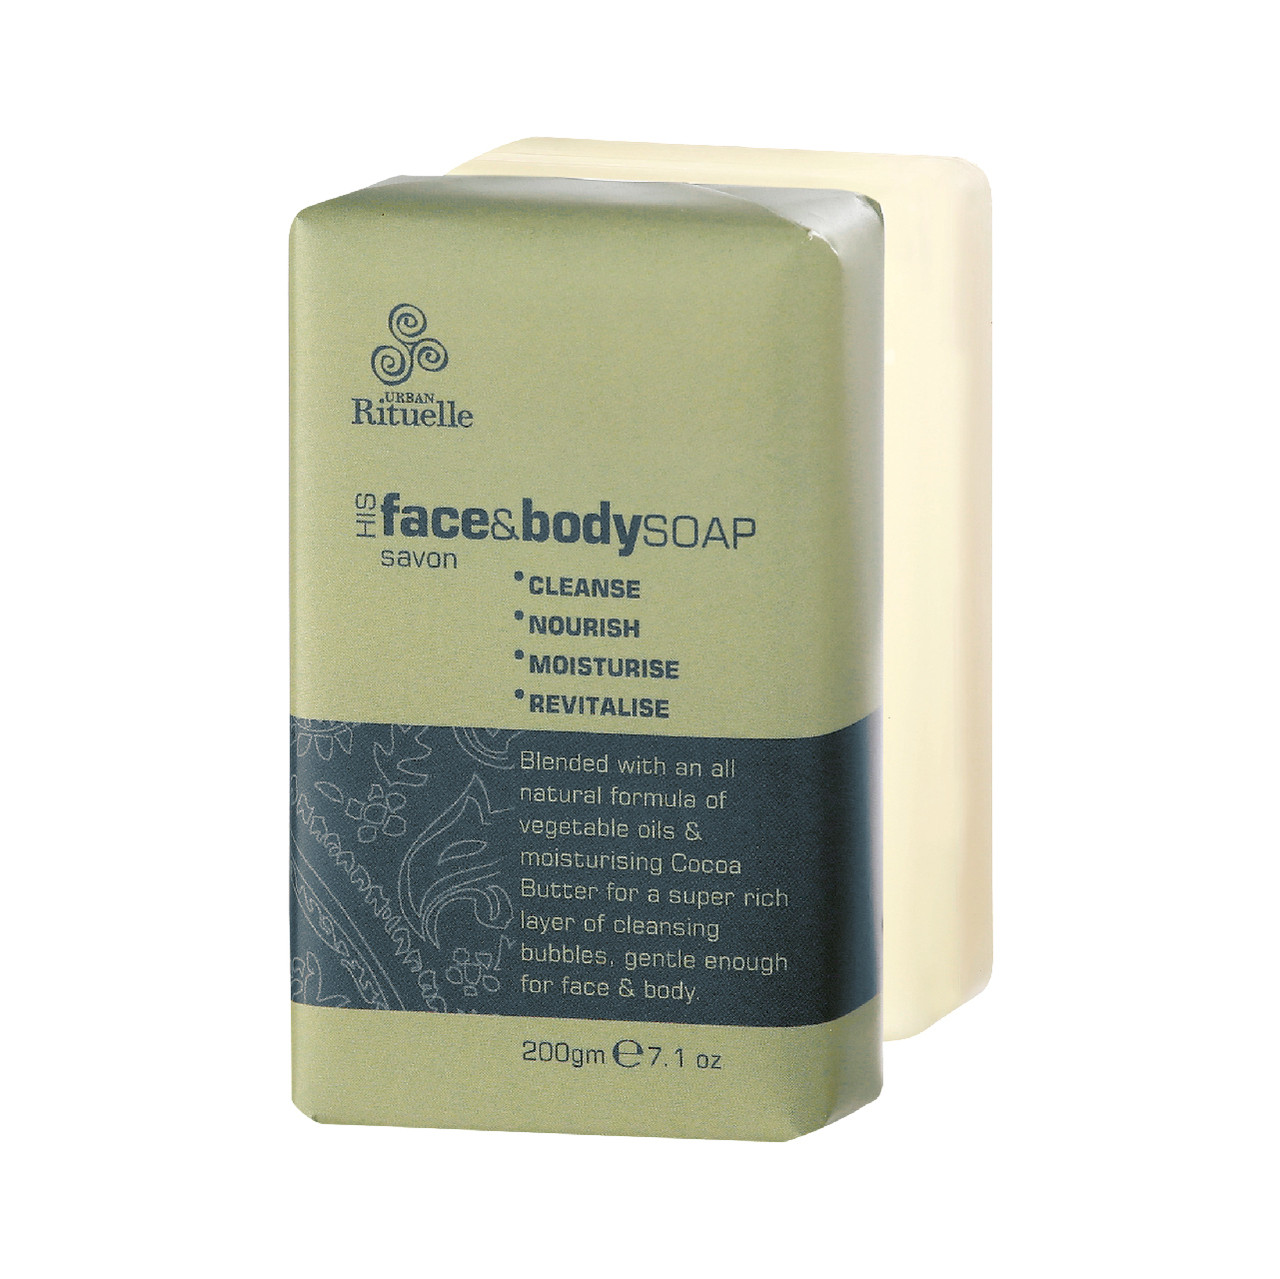 HIS - Face & Body Soap - Urban Rituelle